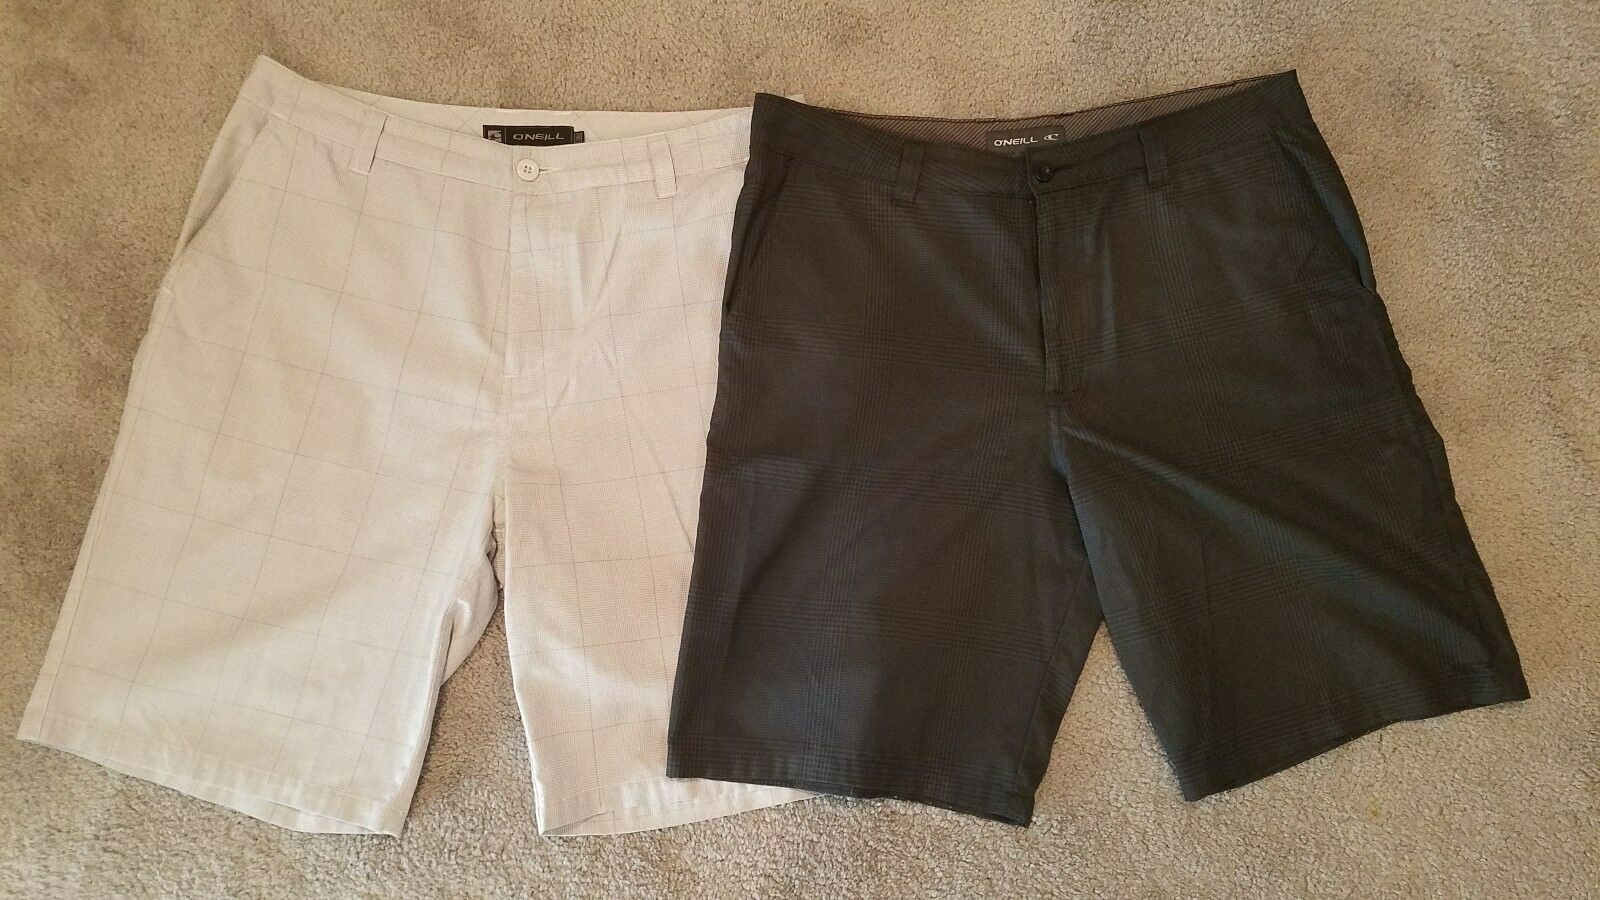 Two mens O'neill shorts 36